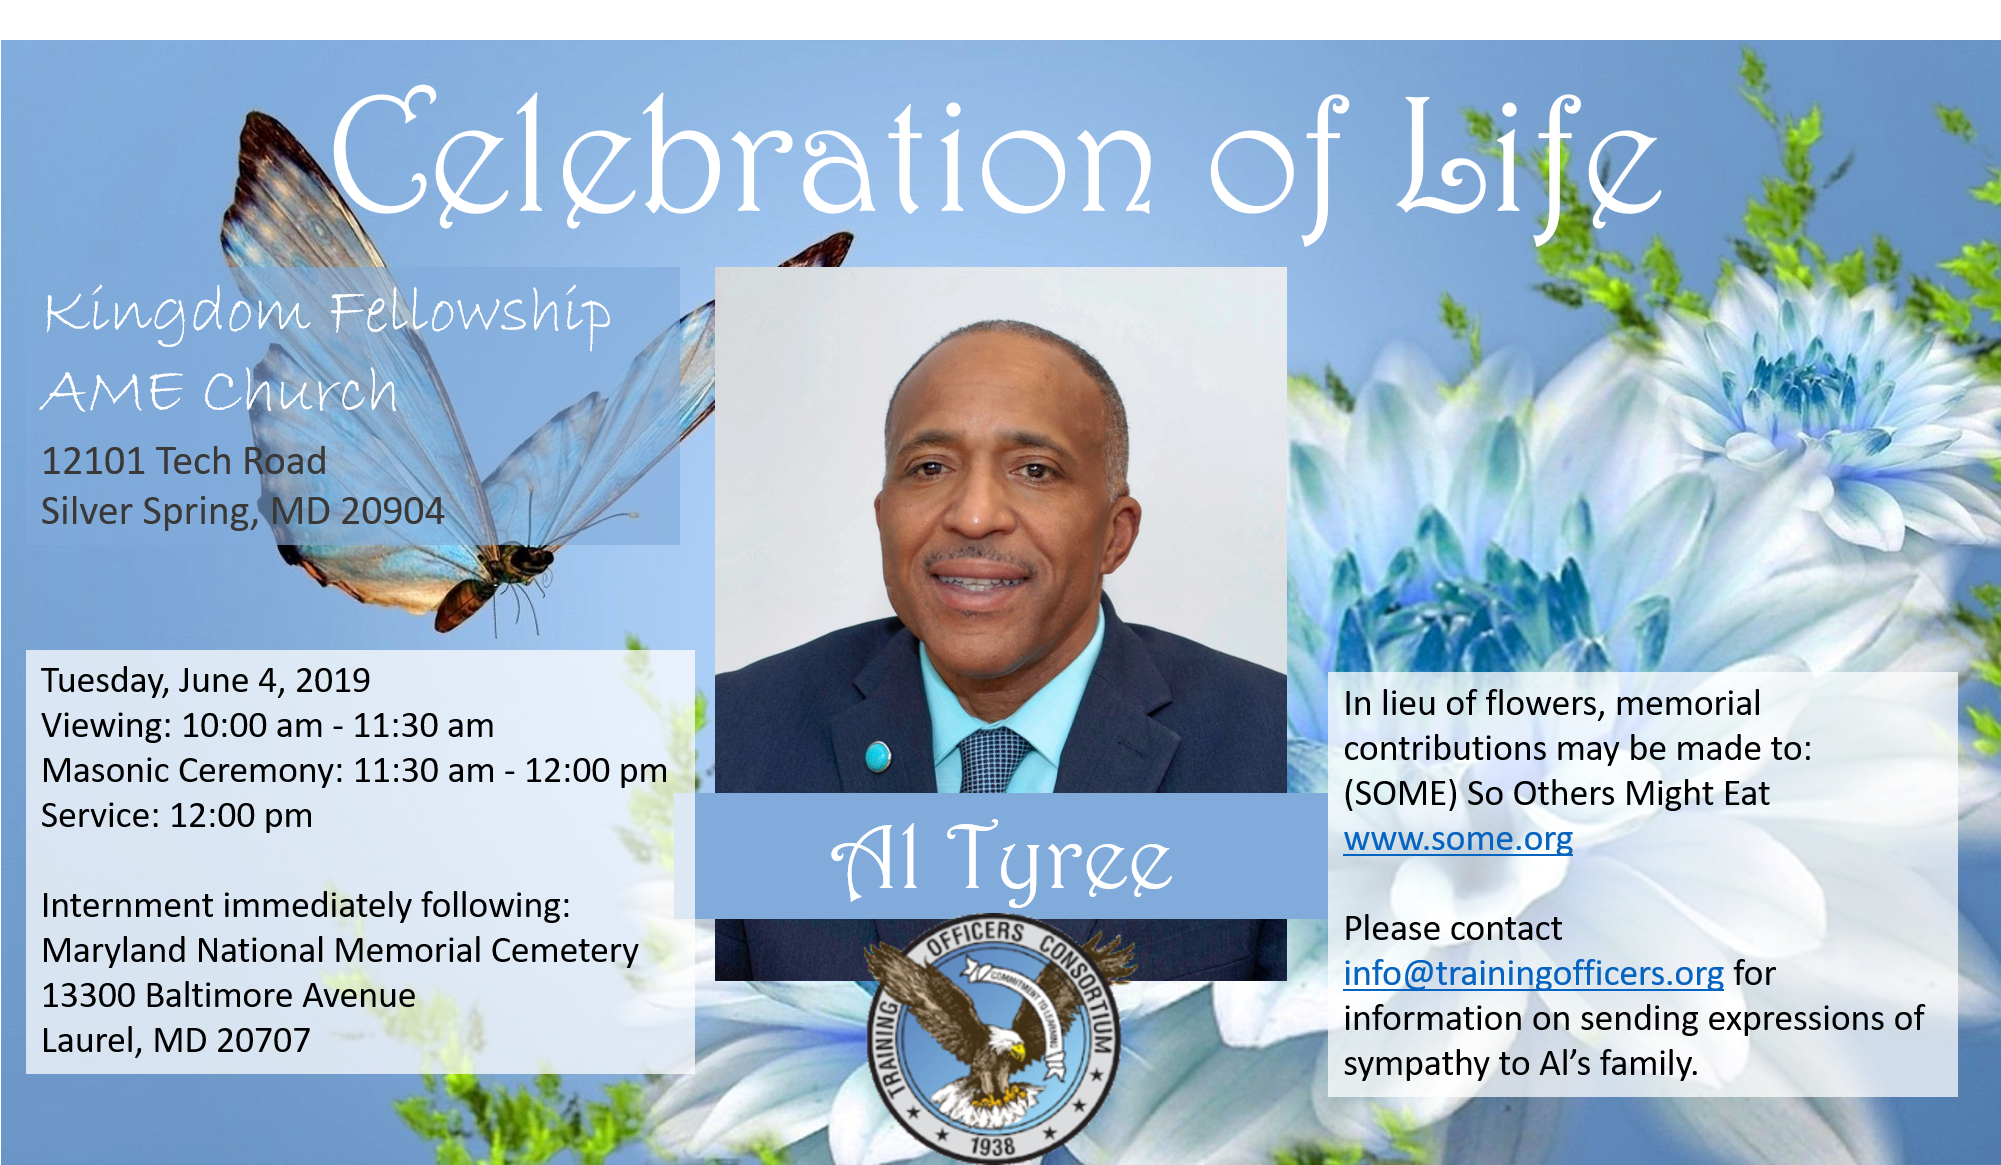 At Tyree Celebration of Life, June 4, 2019 at Kingdom Fellowship AME Church 12101 Tech Road Silver Spring, MD 20904 starting at 10am